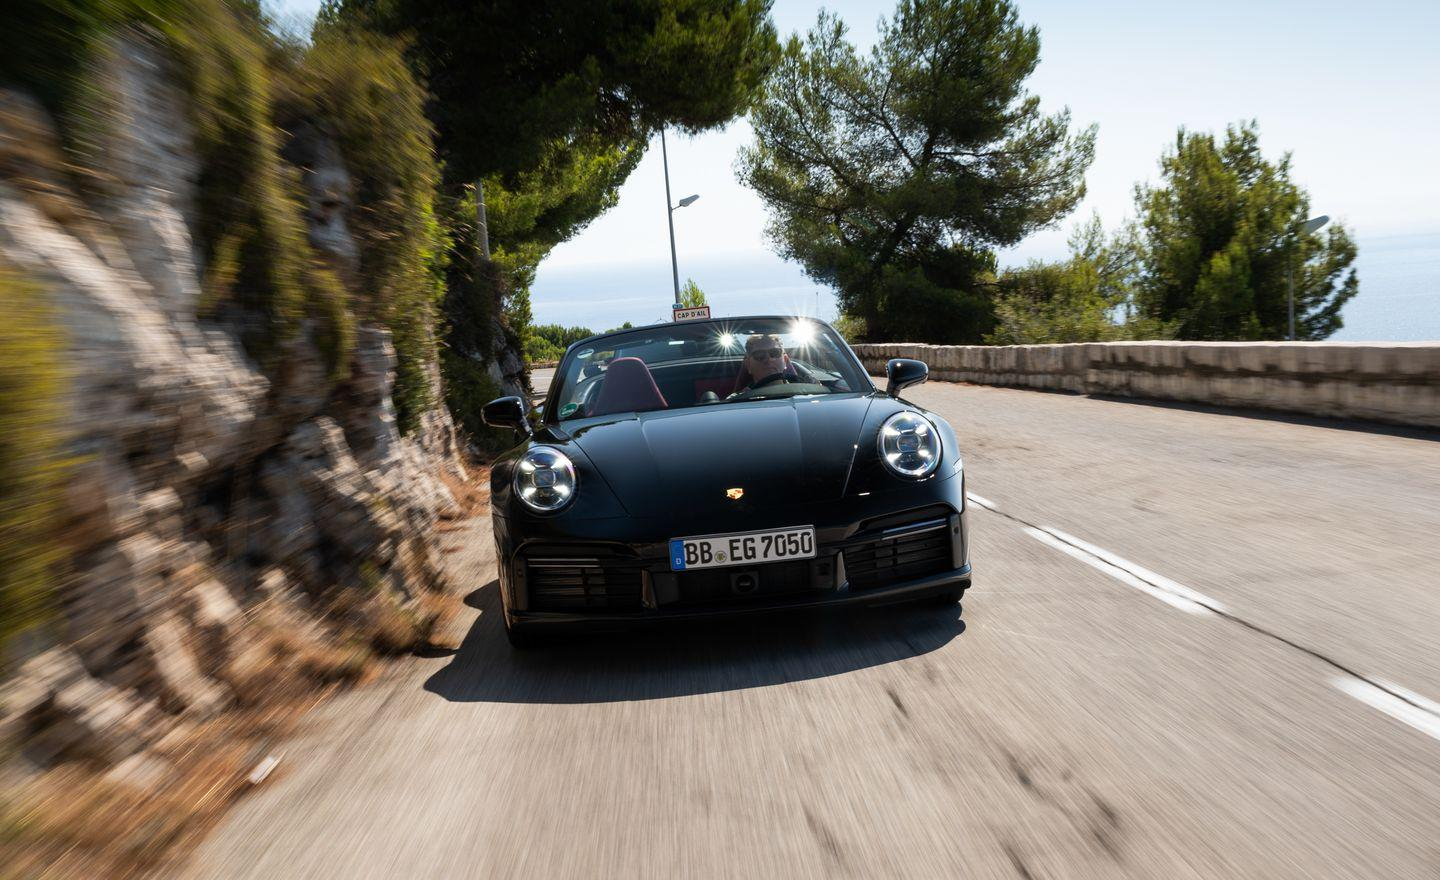 <p>This 992-generation car is the most powerful Porsche 911 Turbo S model ever. At 641 horsepower, the all-wheel-drive 911 should hit 60 mph in about 2.5 seconds. </p>